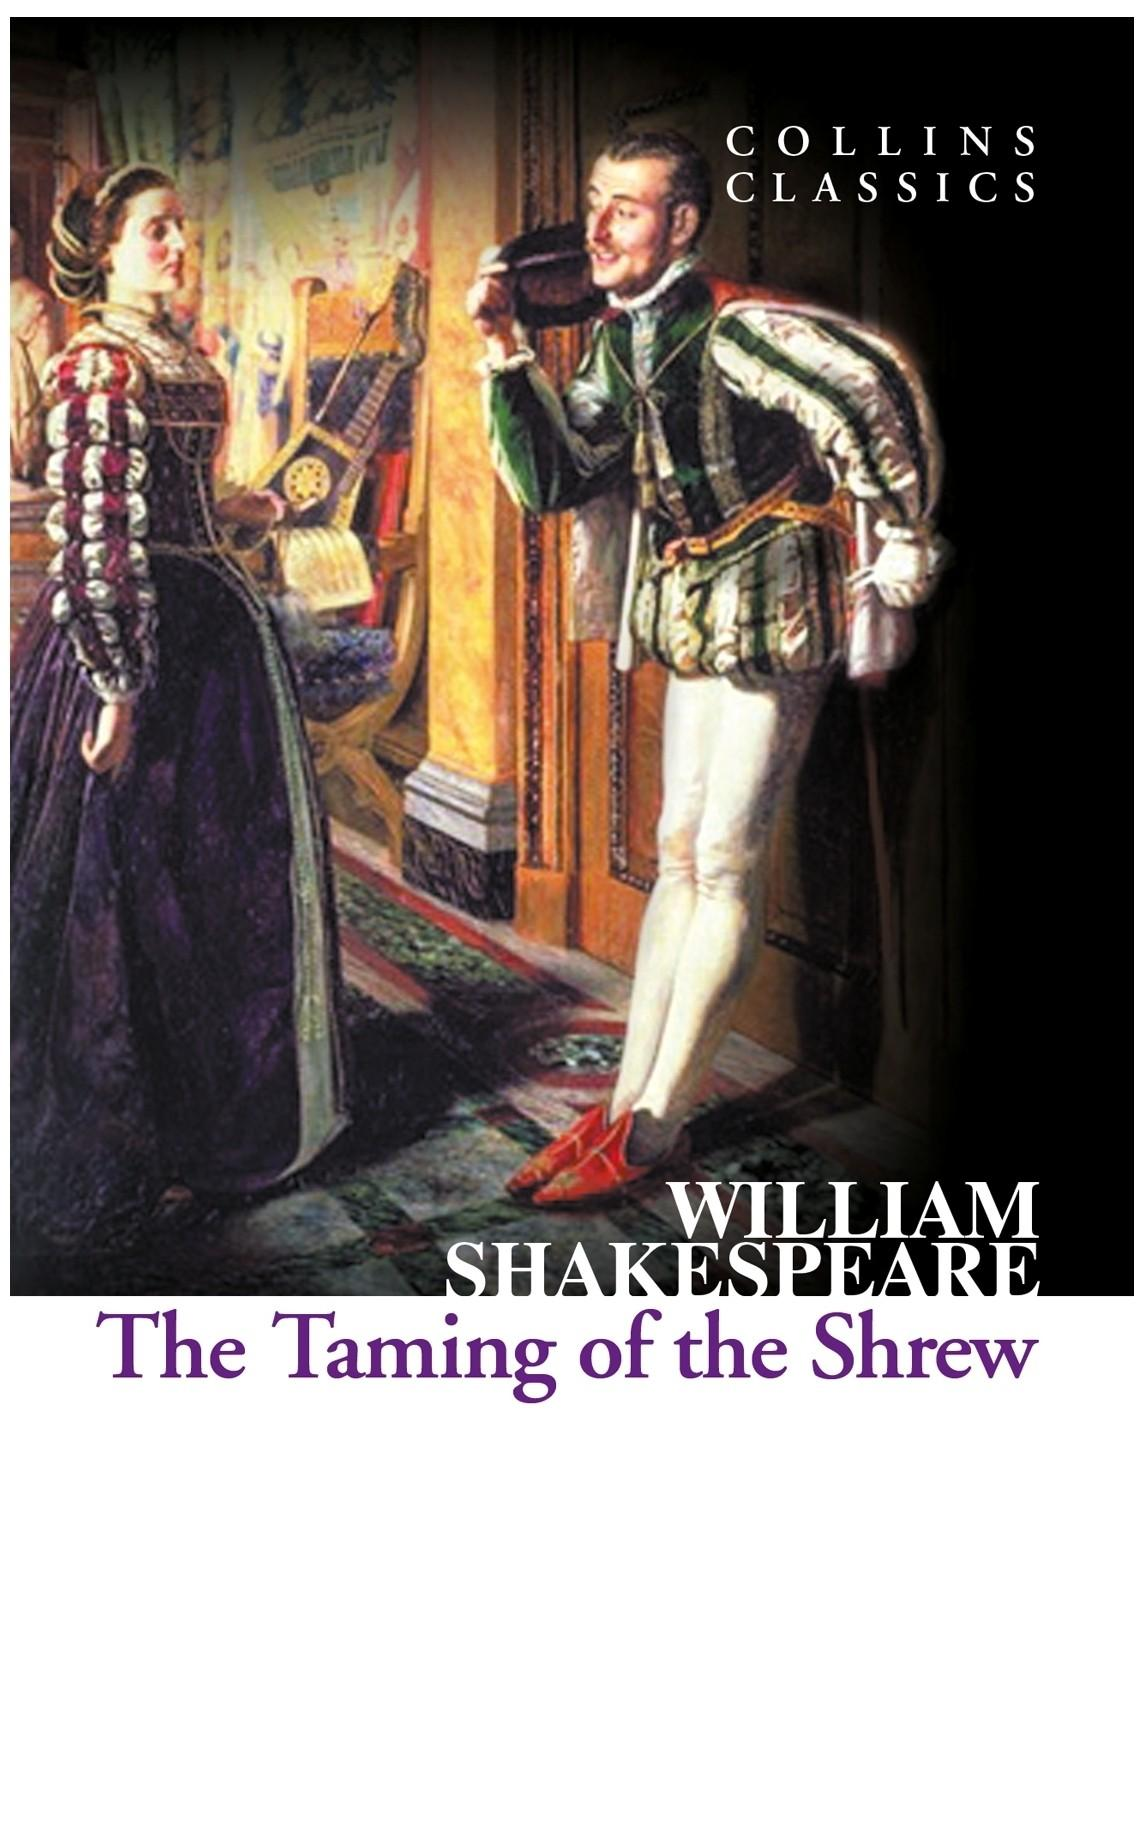 a shakespearean reflection of marriage in the taming of the shrew a play by william shakespeare